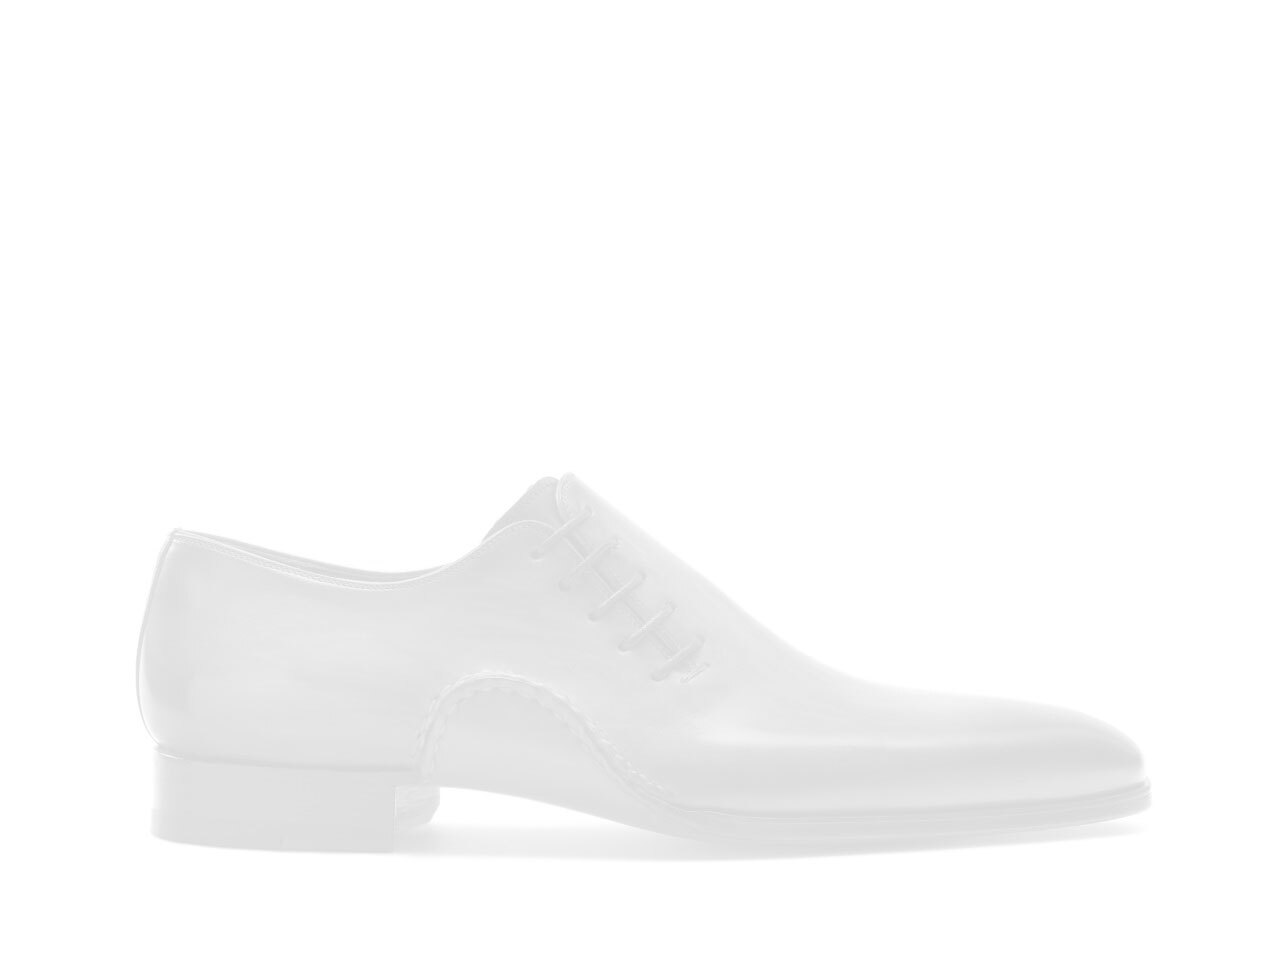 Side view of the Magnanni Nico Grey Men's Sneakers